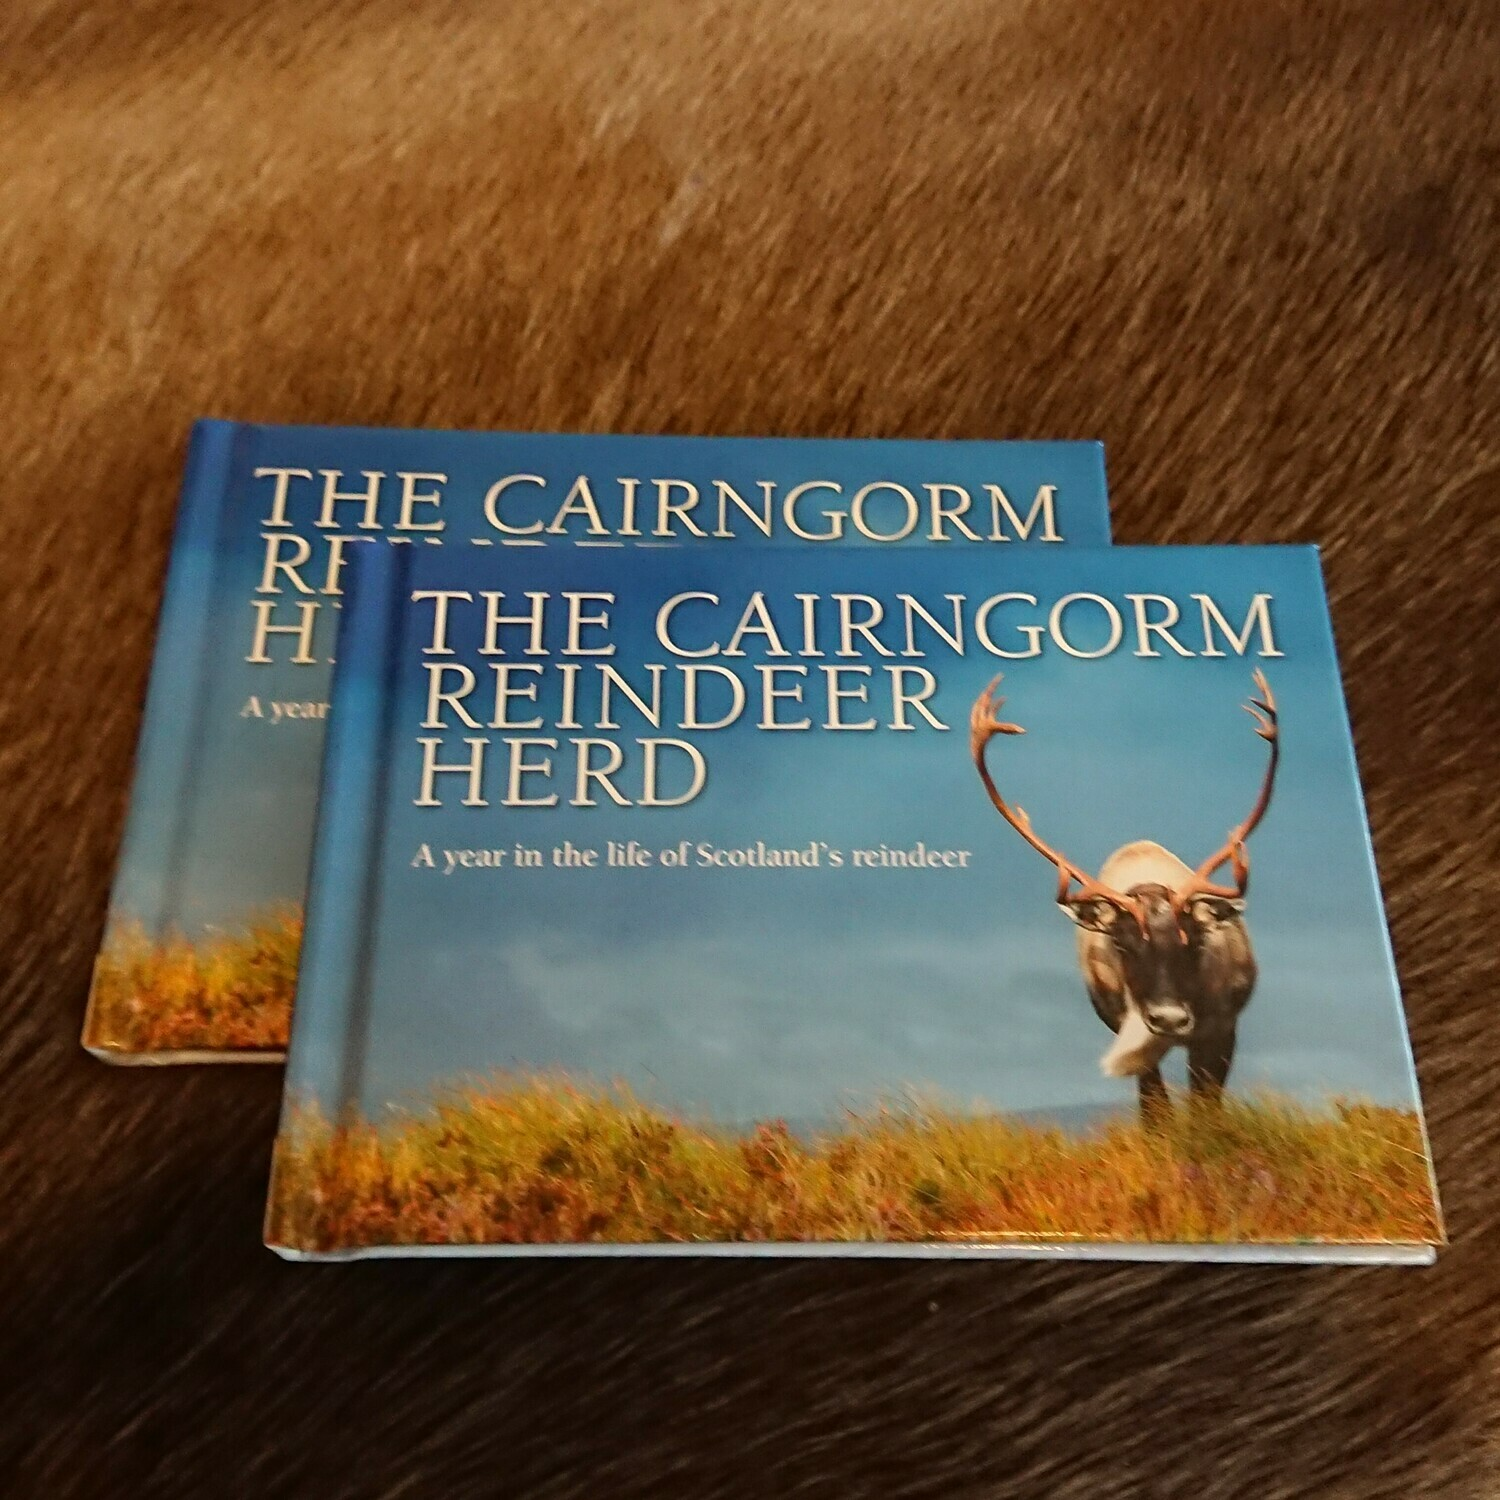 A Year in the Life of Scotland's Reindeer: Photo Book